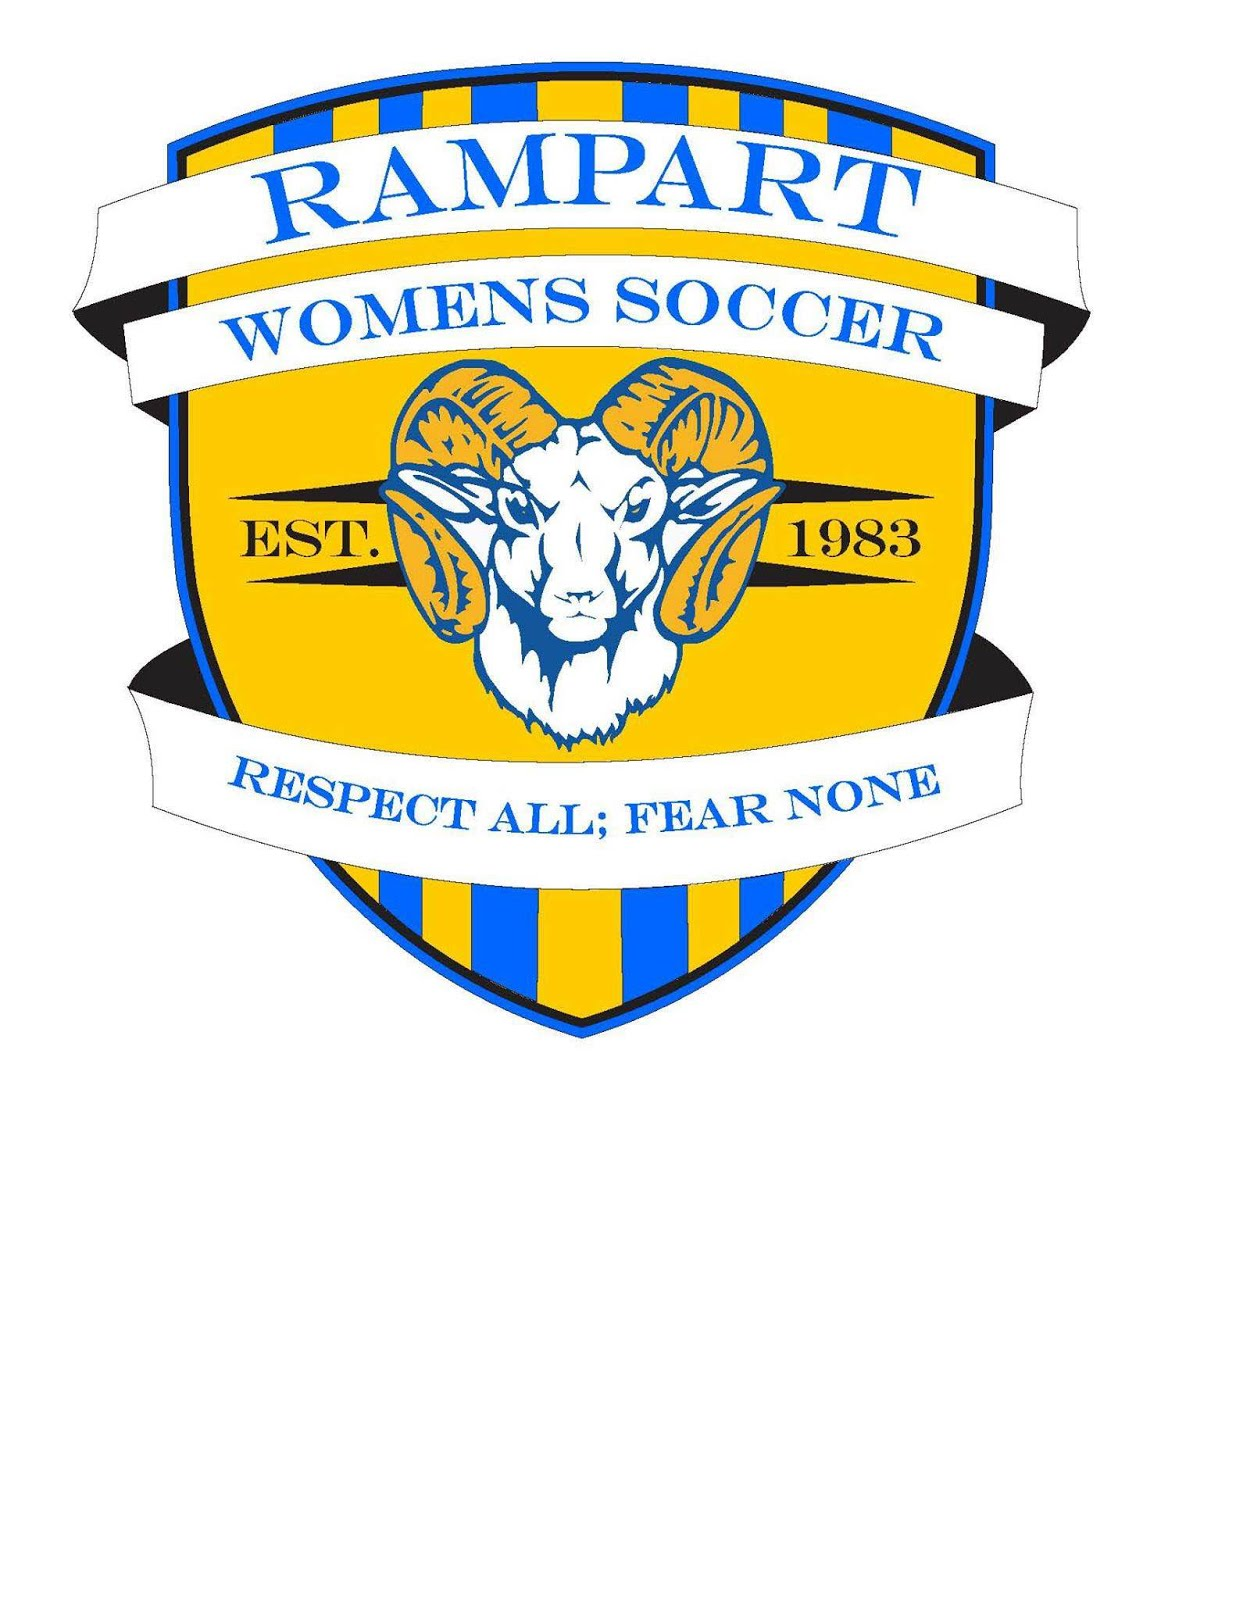 Rampart Girls Soccer Crest